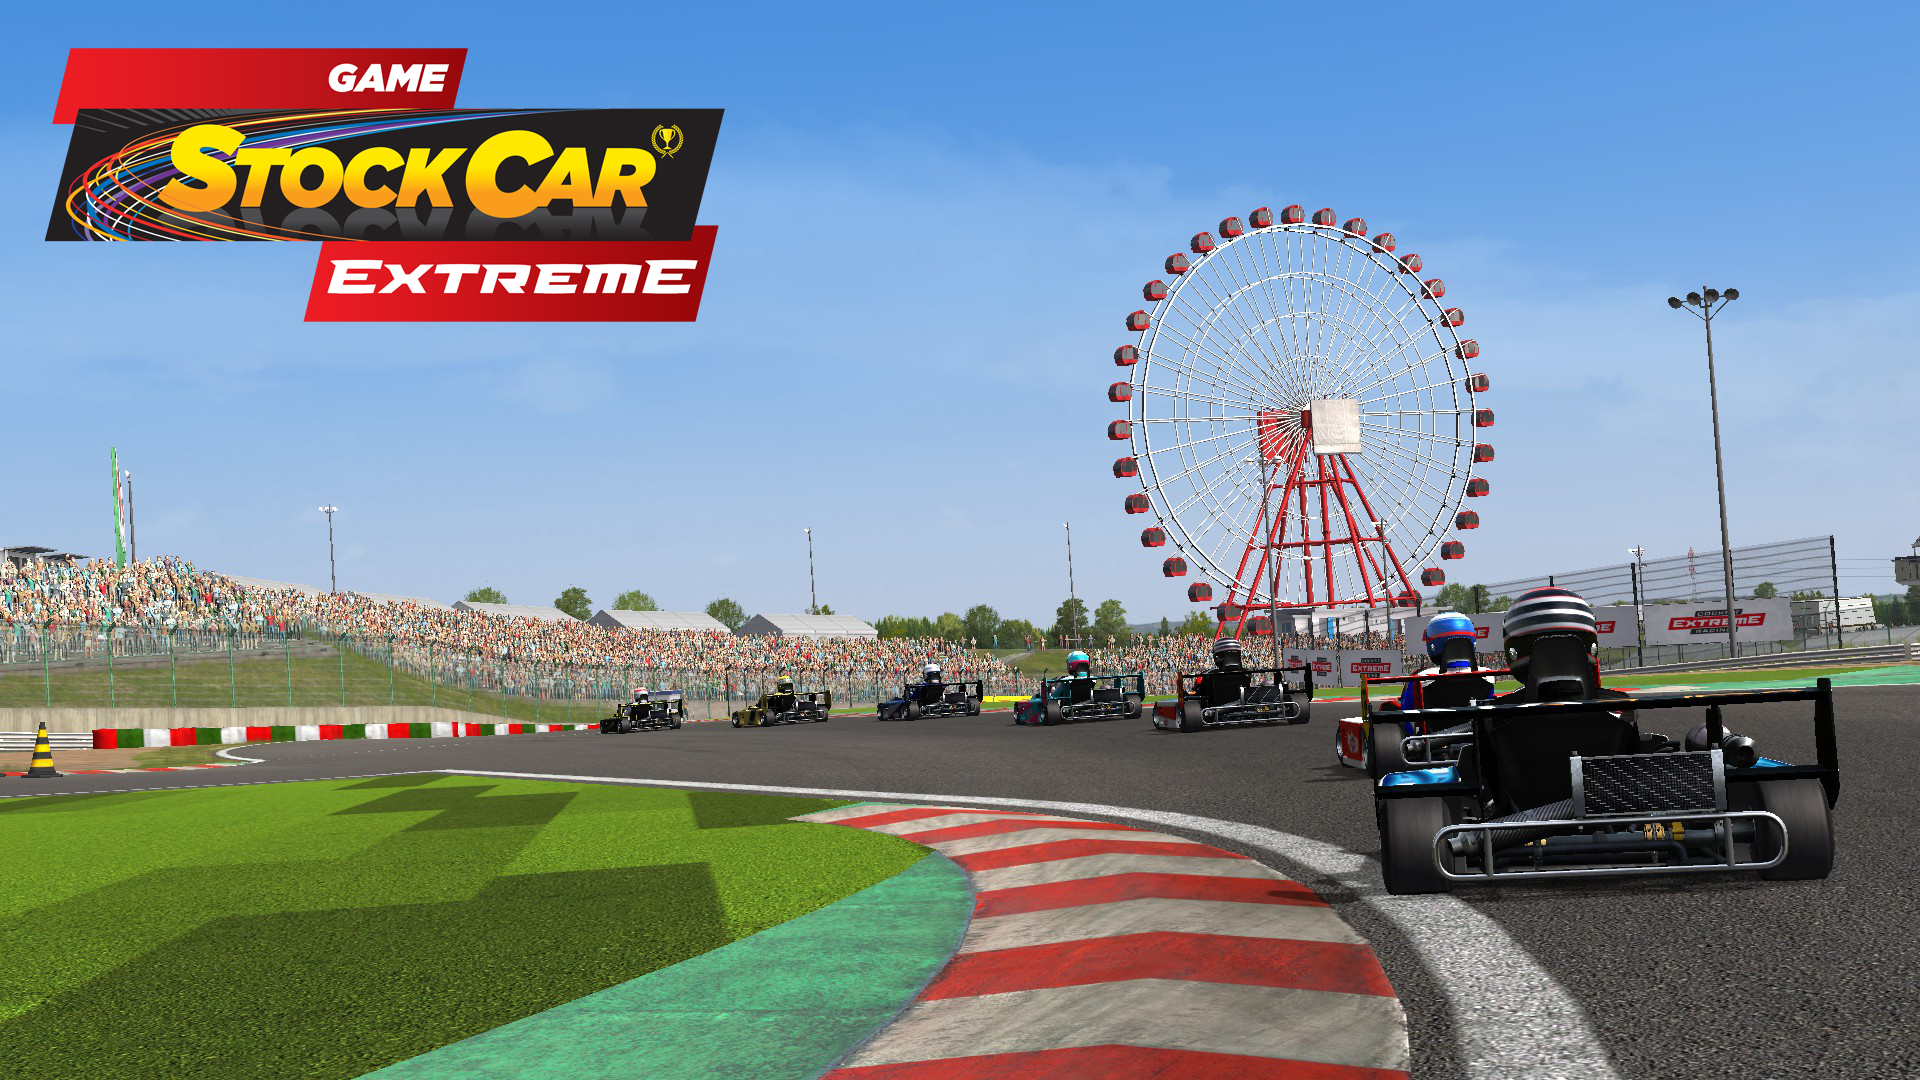 Stock Car Extreme - Superkarts and Suzuka